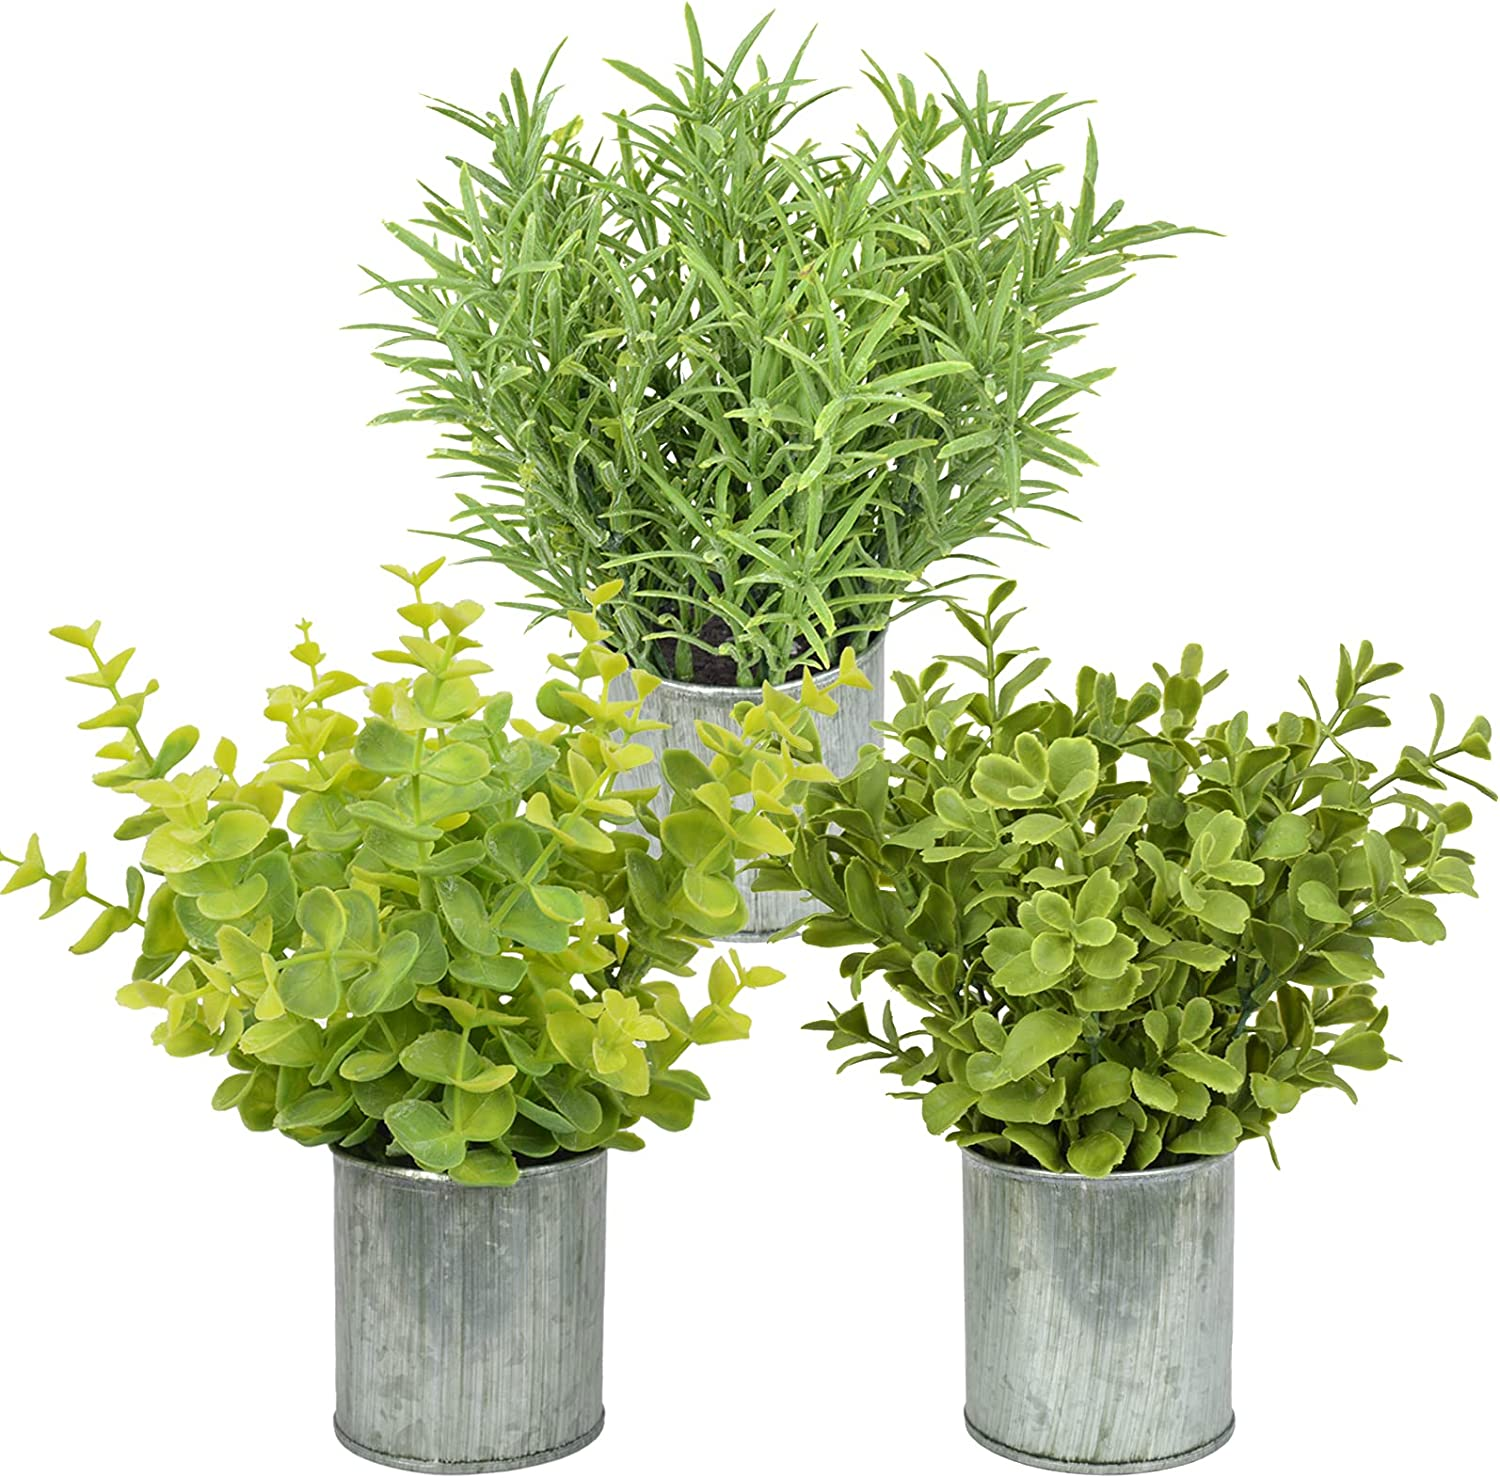 3 Pack Mini Galvanized Metal Potted Fake Plants Artificial Eucalyptus Boxwood Rosemary Plants, Rustic Farmhouse Home Decor, Centerpieces for Dining Room Table.